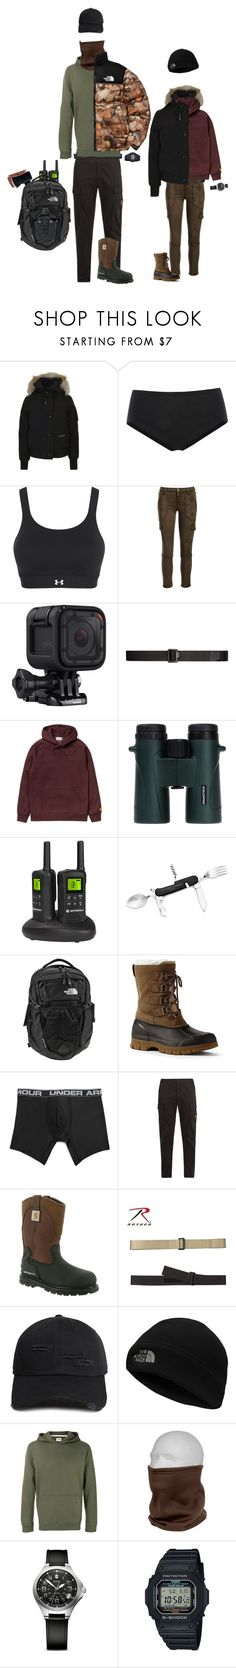 """Finding Bigfoot"" by kevin-whitcanack on Polyvore featuring Canada Goose, Wolford, Under Armour, Joie, Rothco, GoPro, 5.11 Tactical, Carhartt, Motorola and Celebrate Shop"